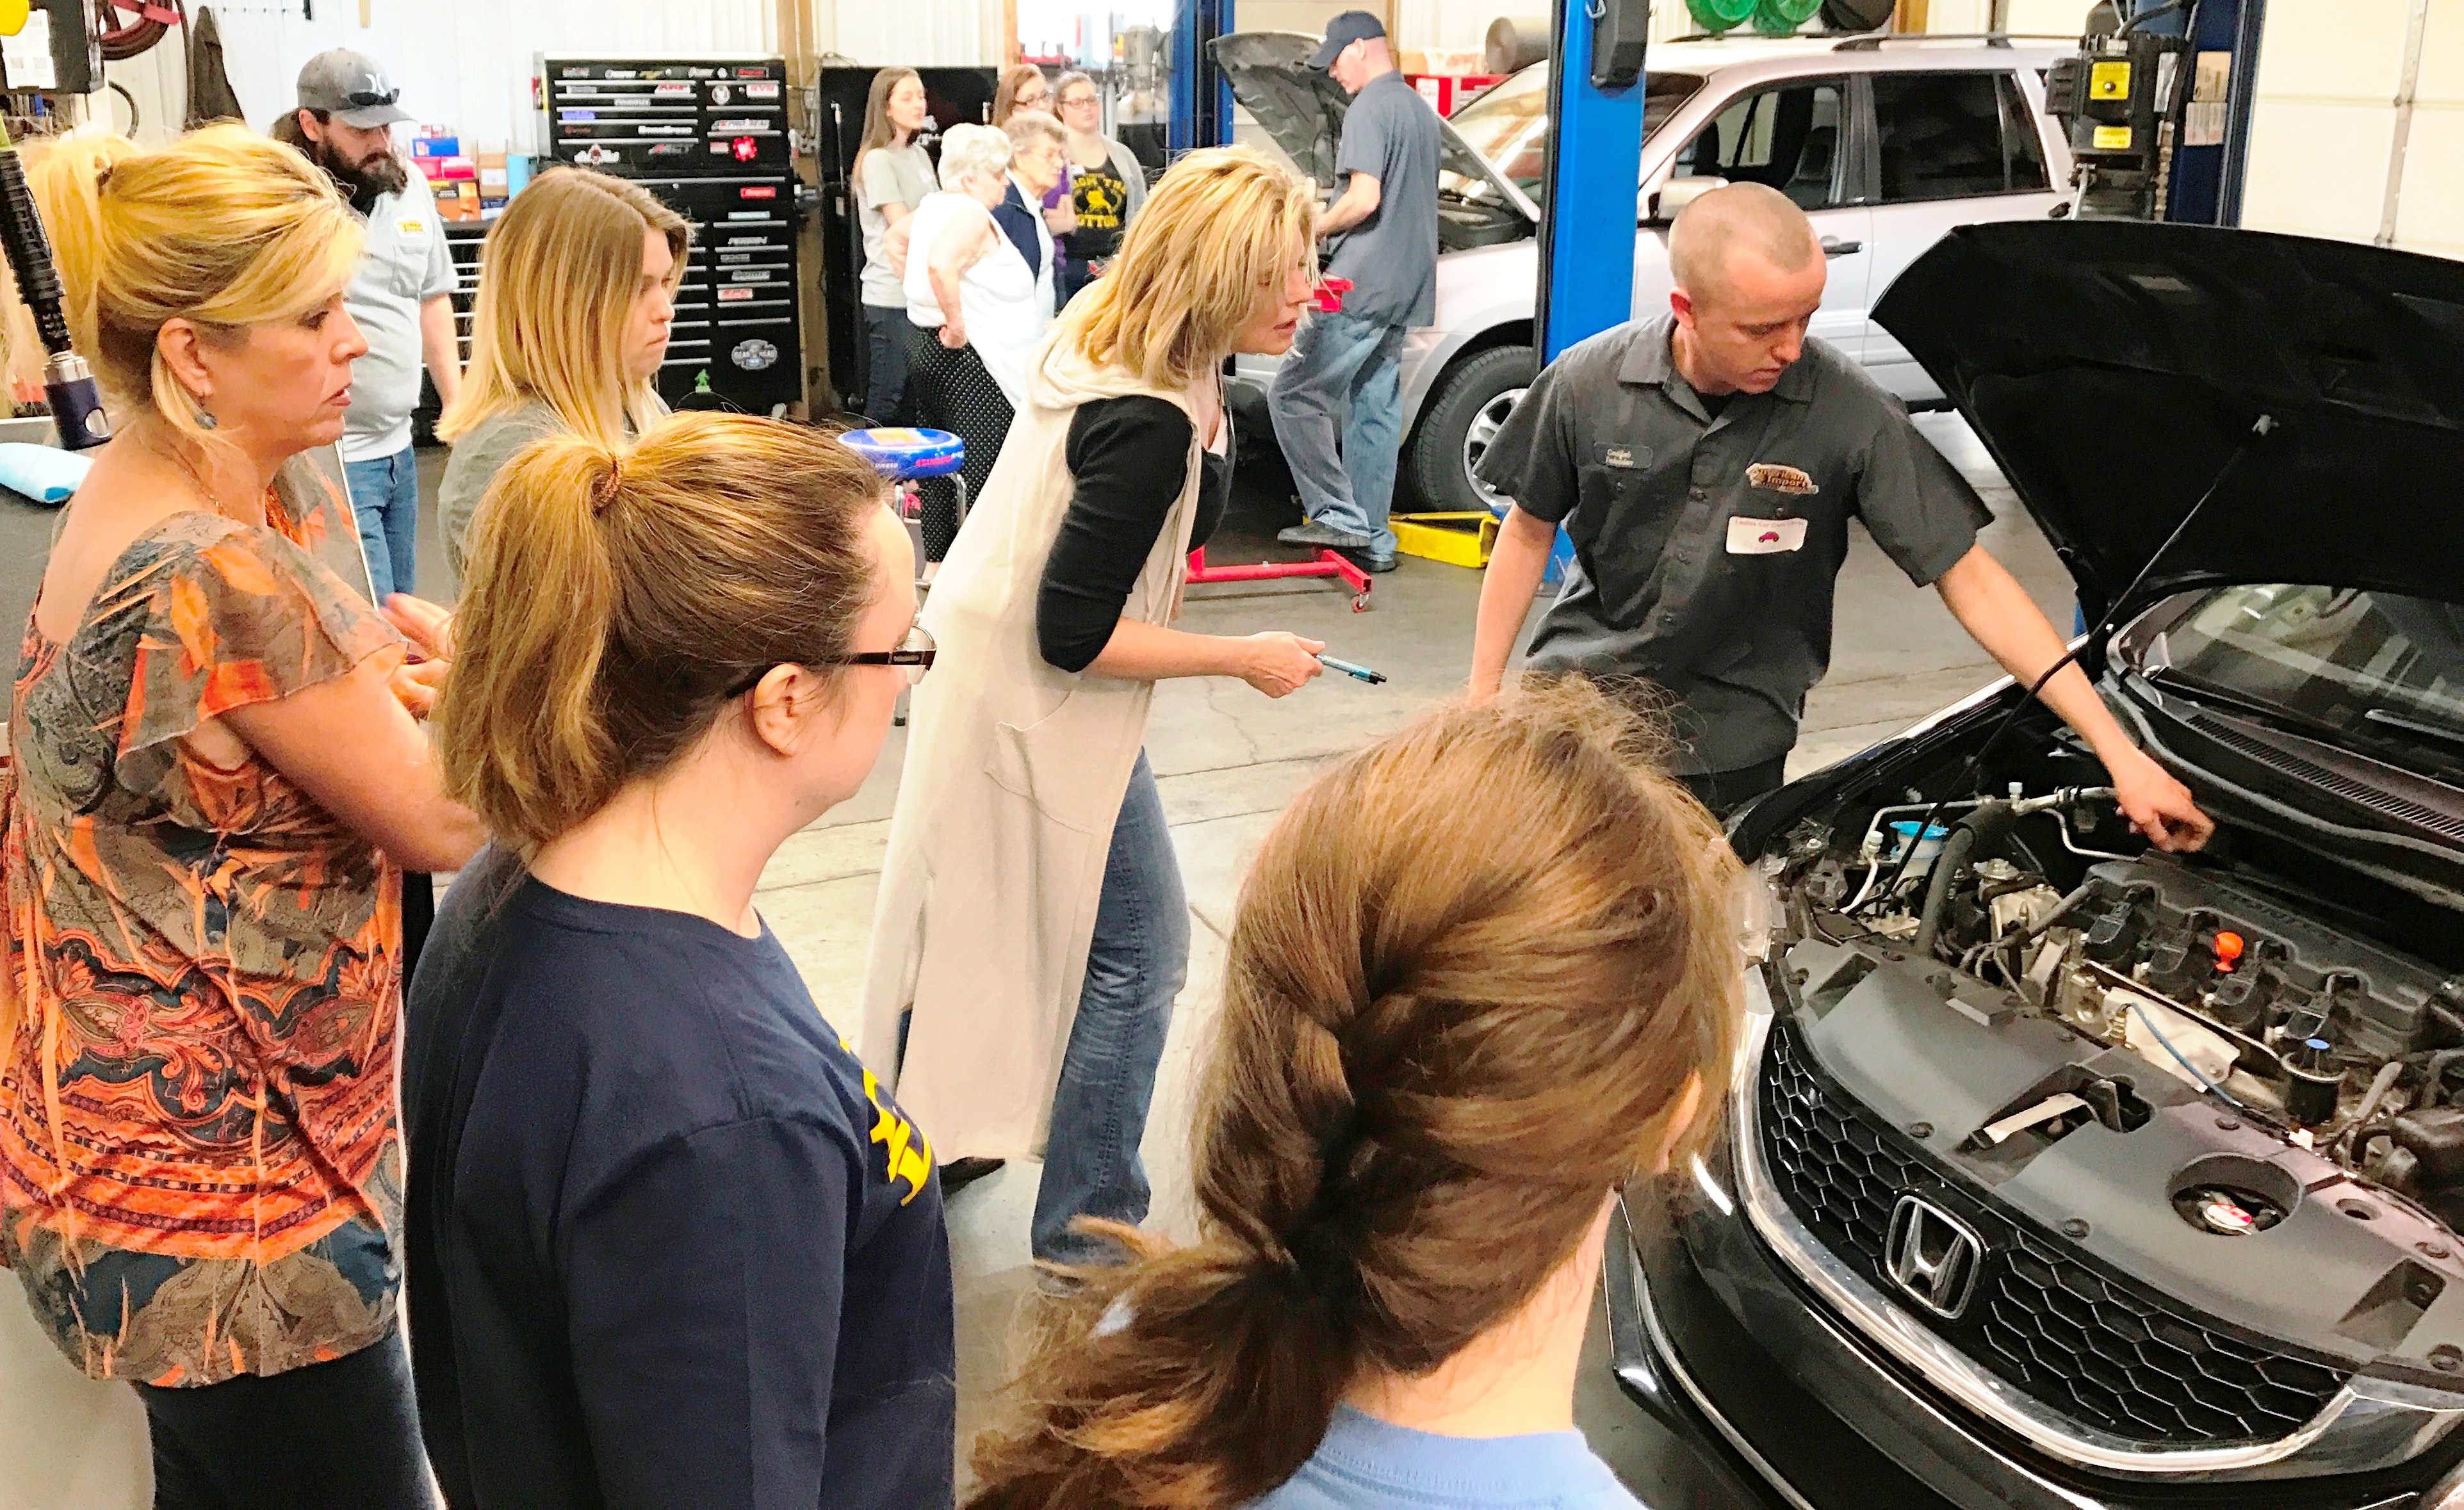 Federated Member Hosts Auto Care Clinic 2017 04 13 Ratchetwrench